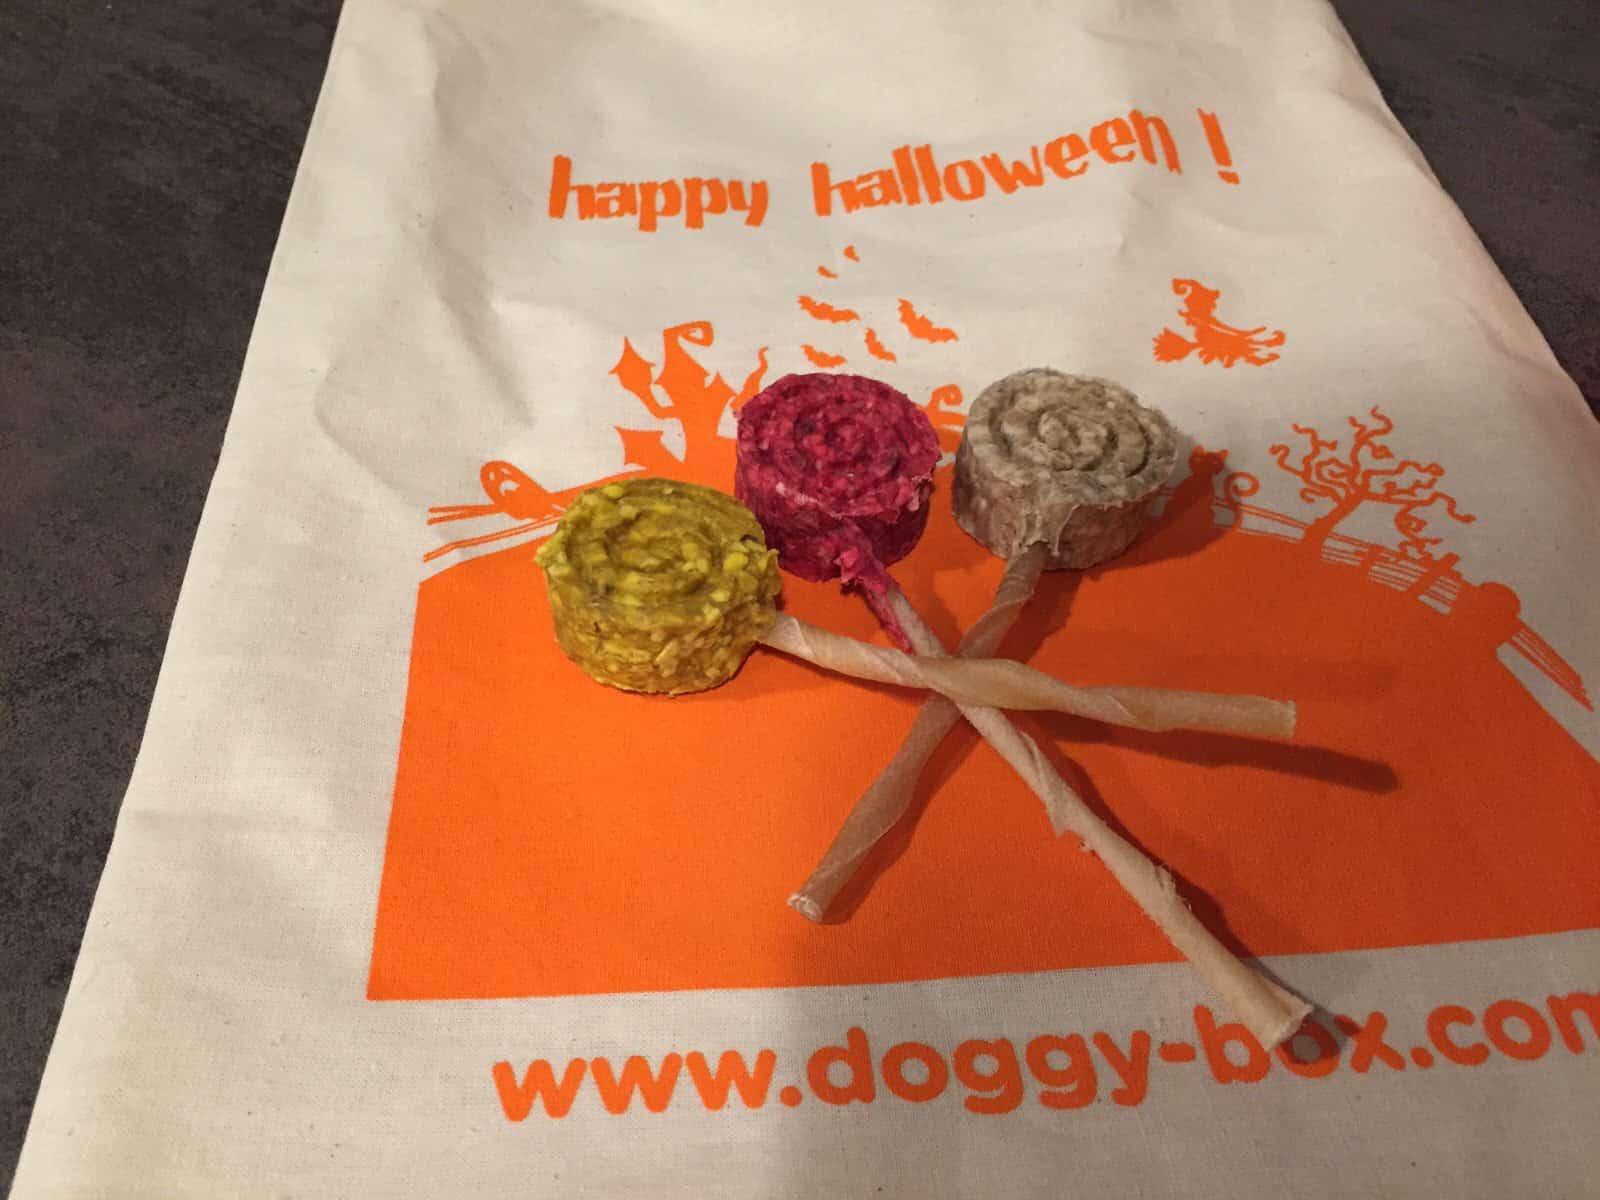 doggybox-octobre2014-2